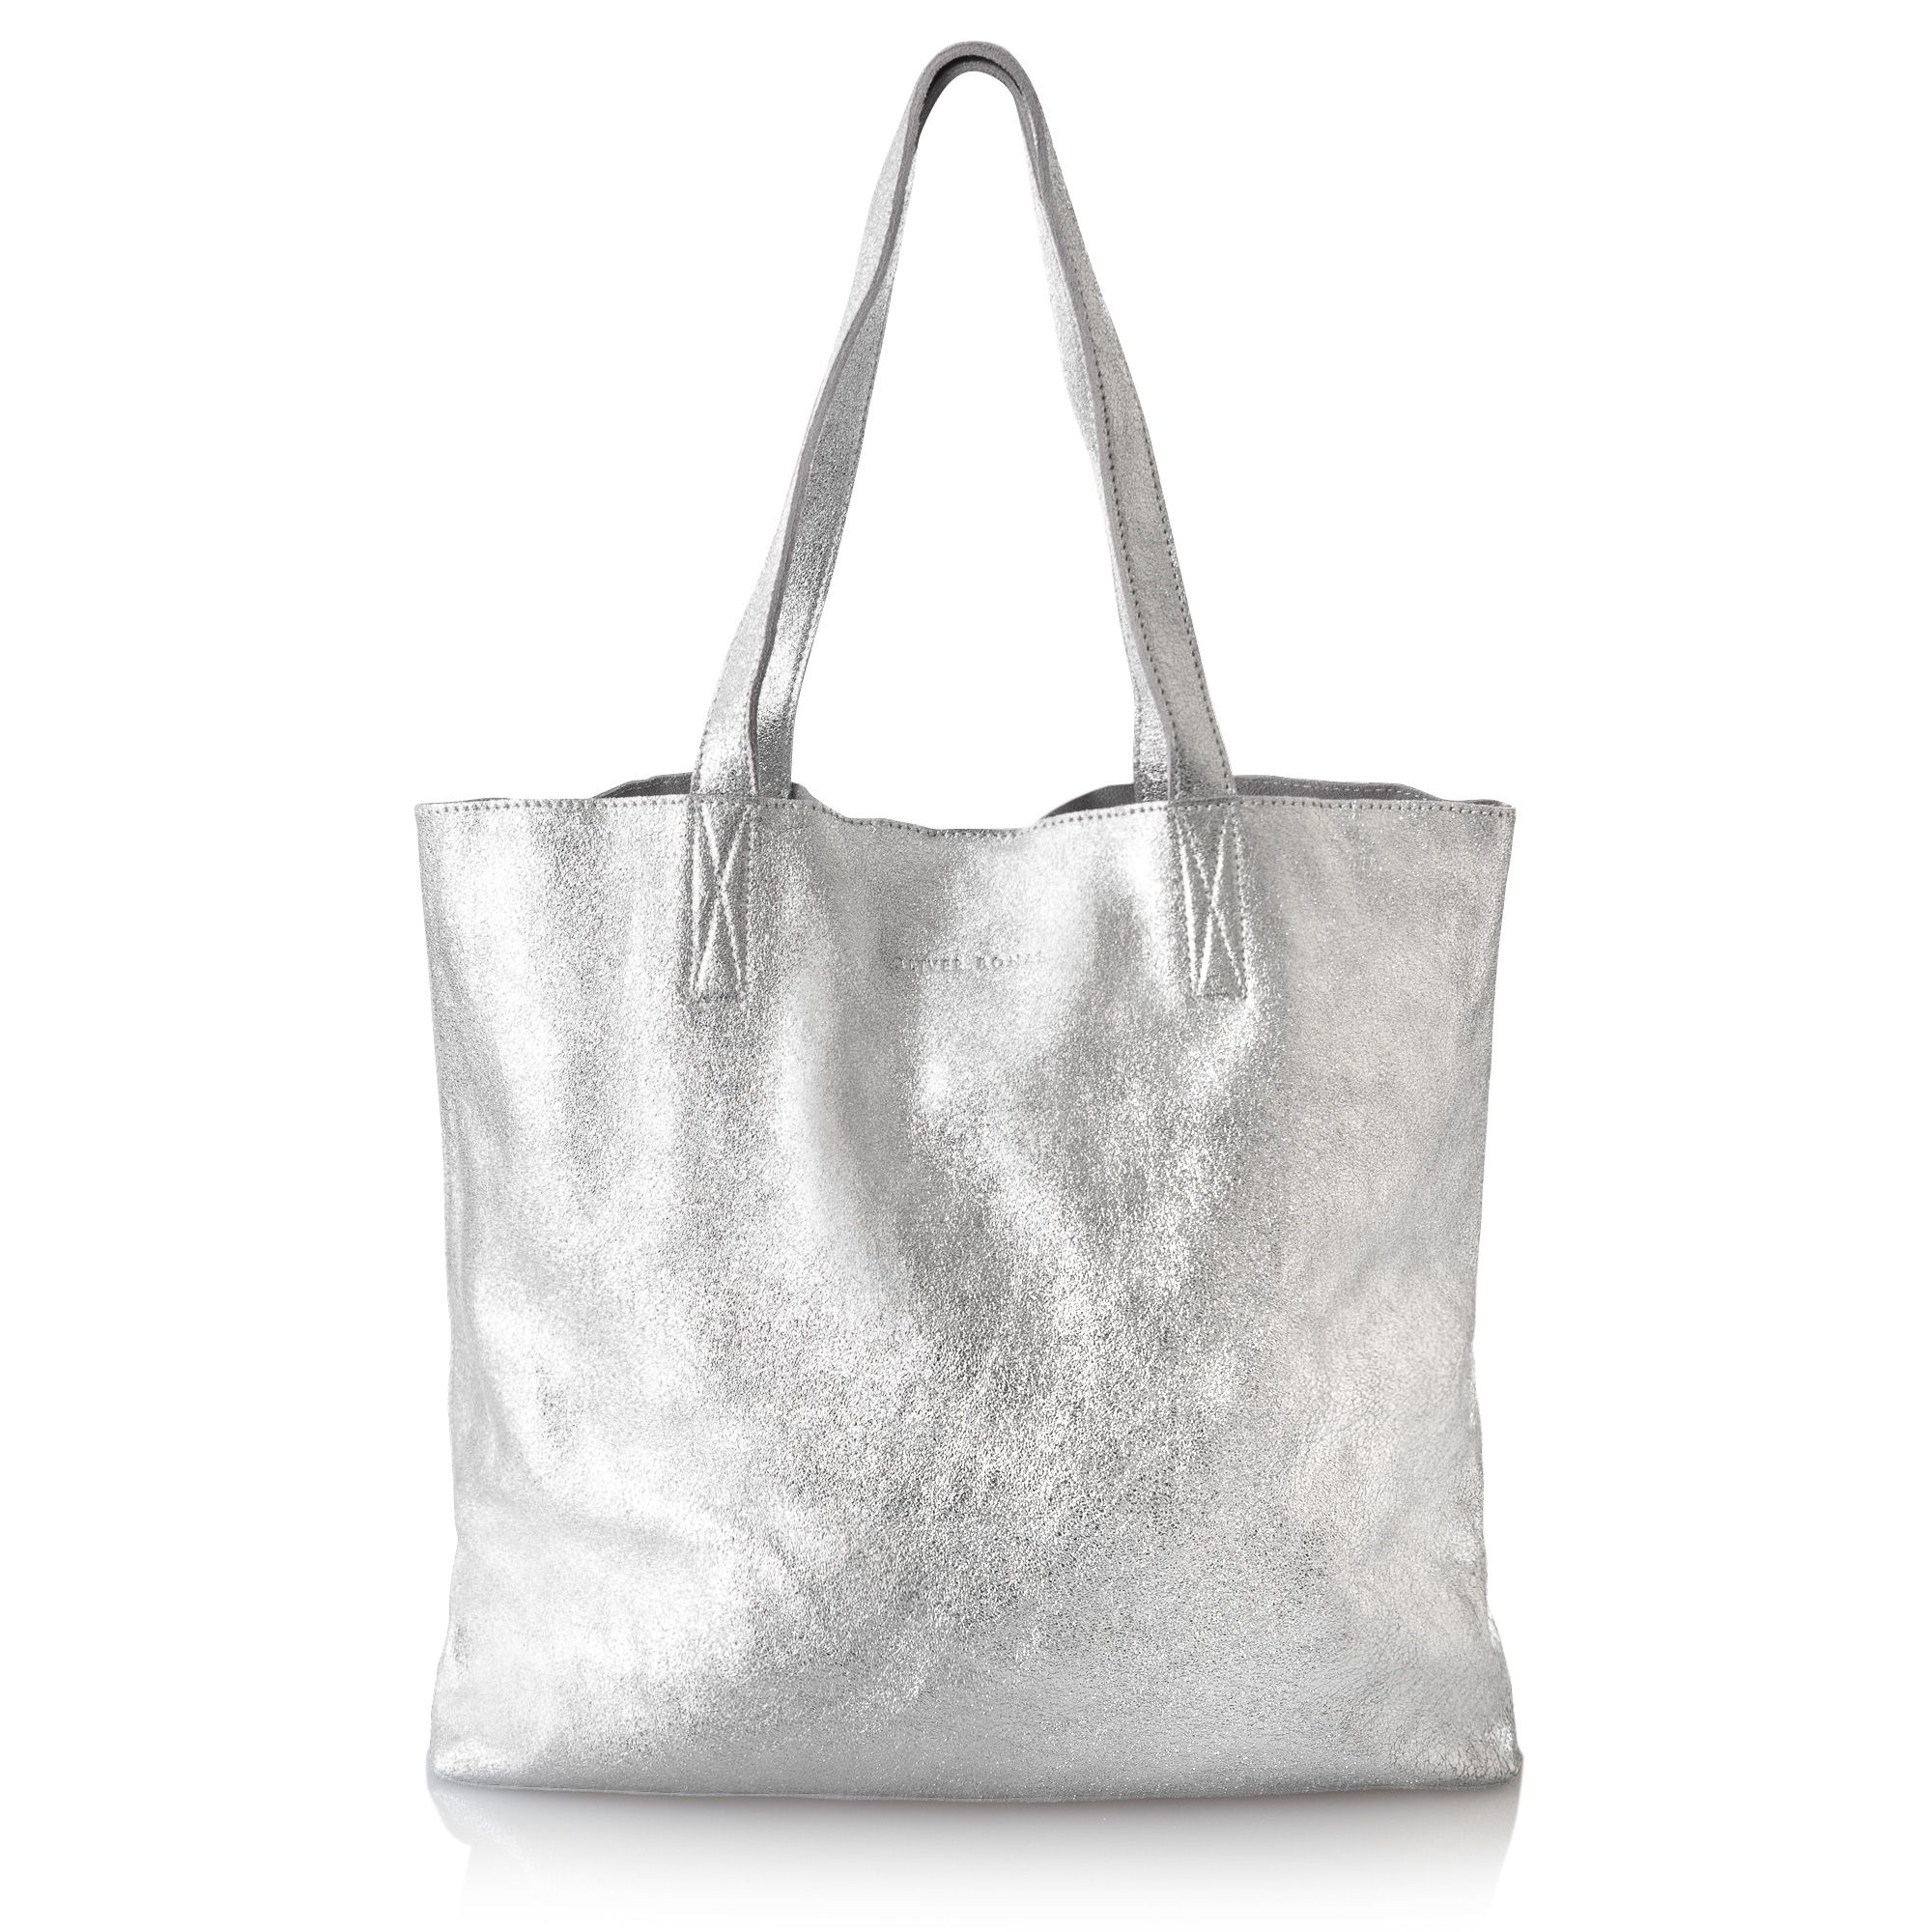 2798562038f964 The Silver Crackle Metallic Leather Handbag has fashion magpies on high  alert